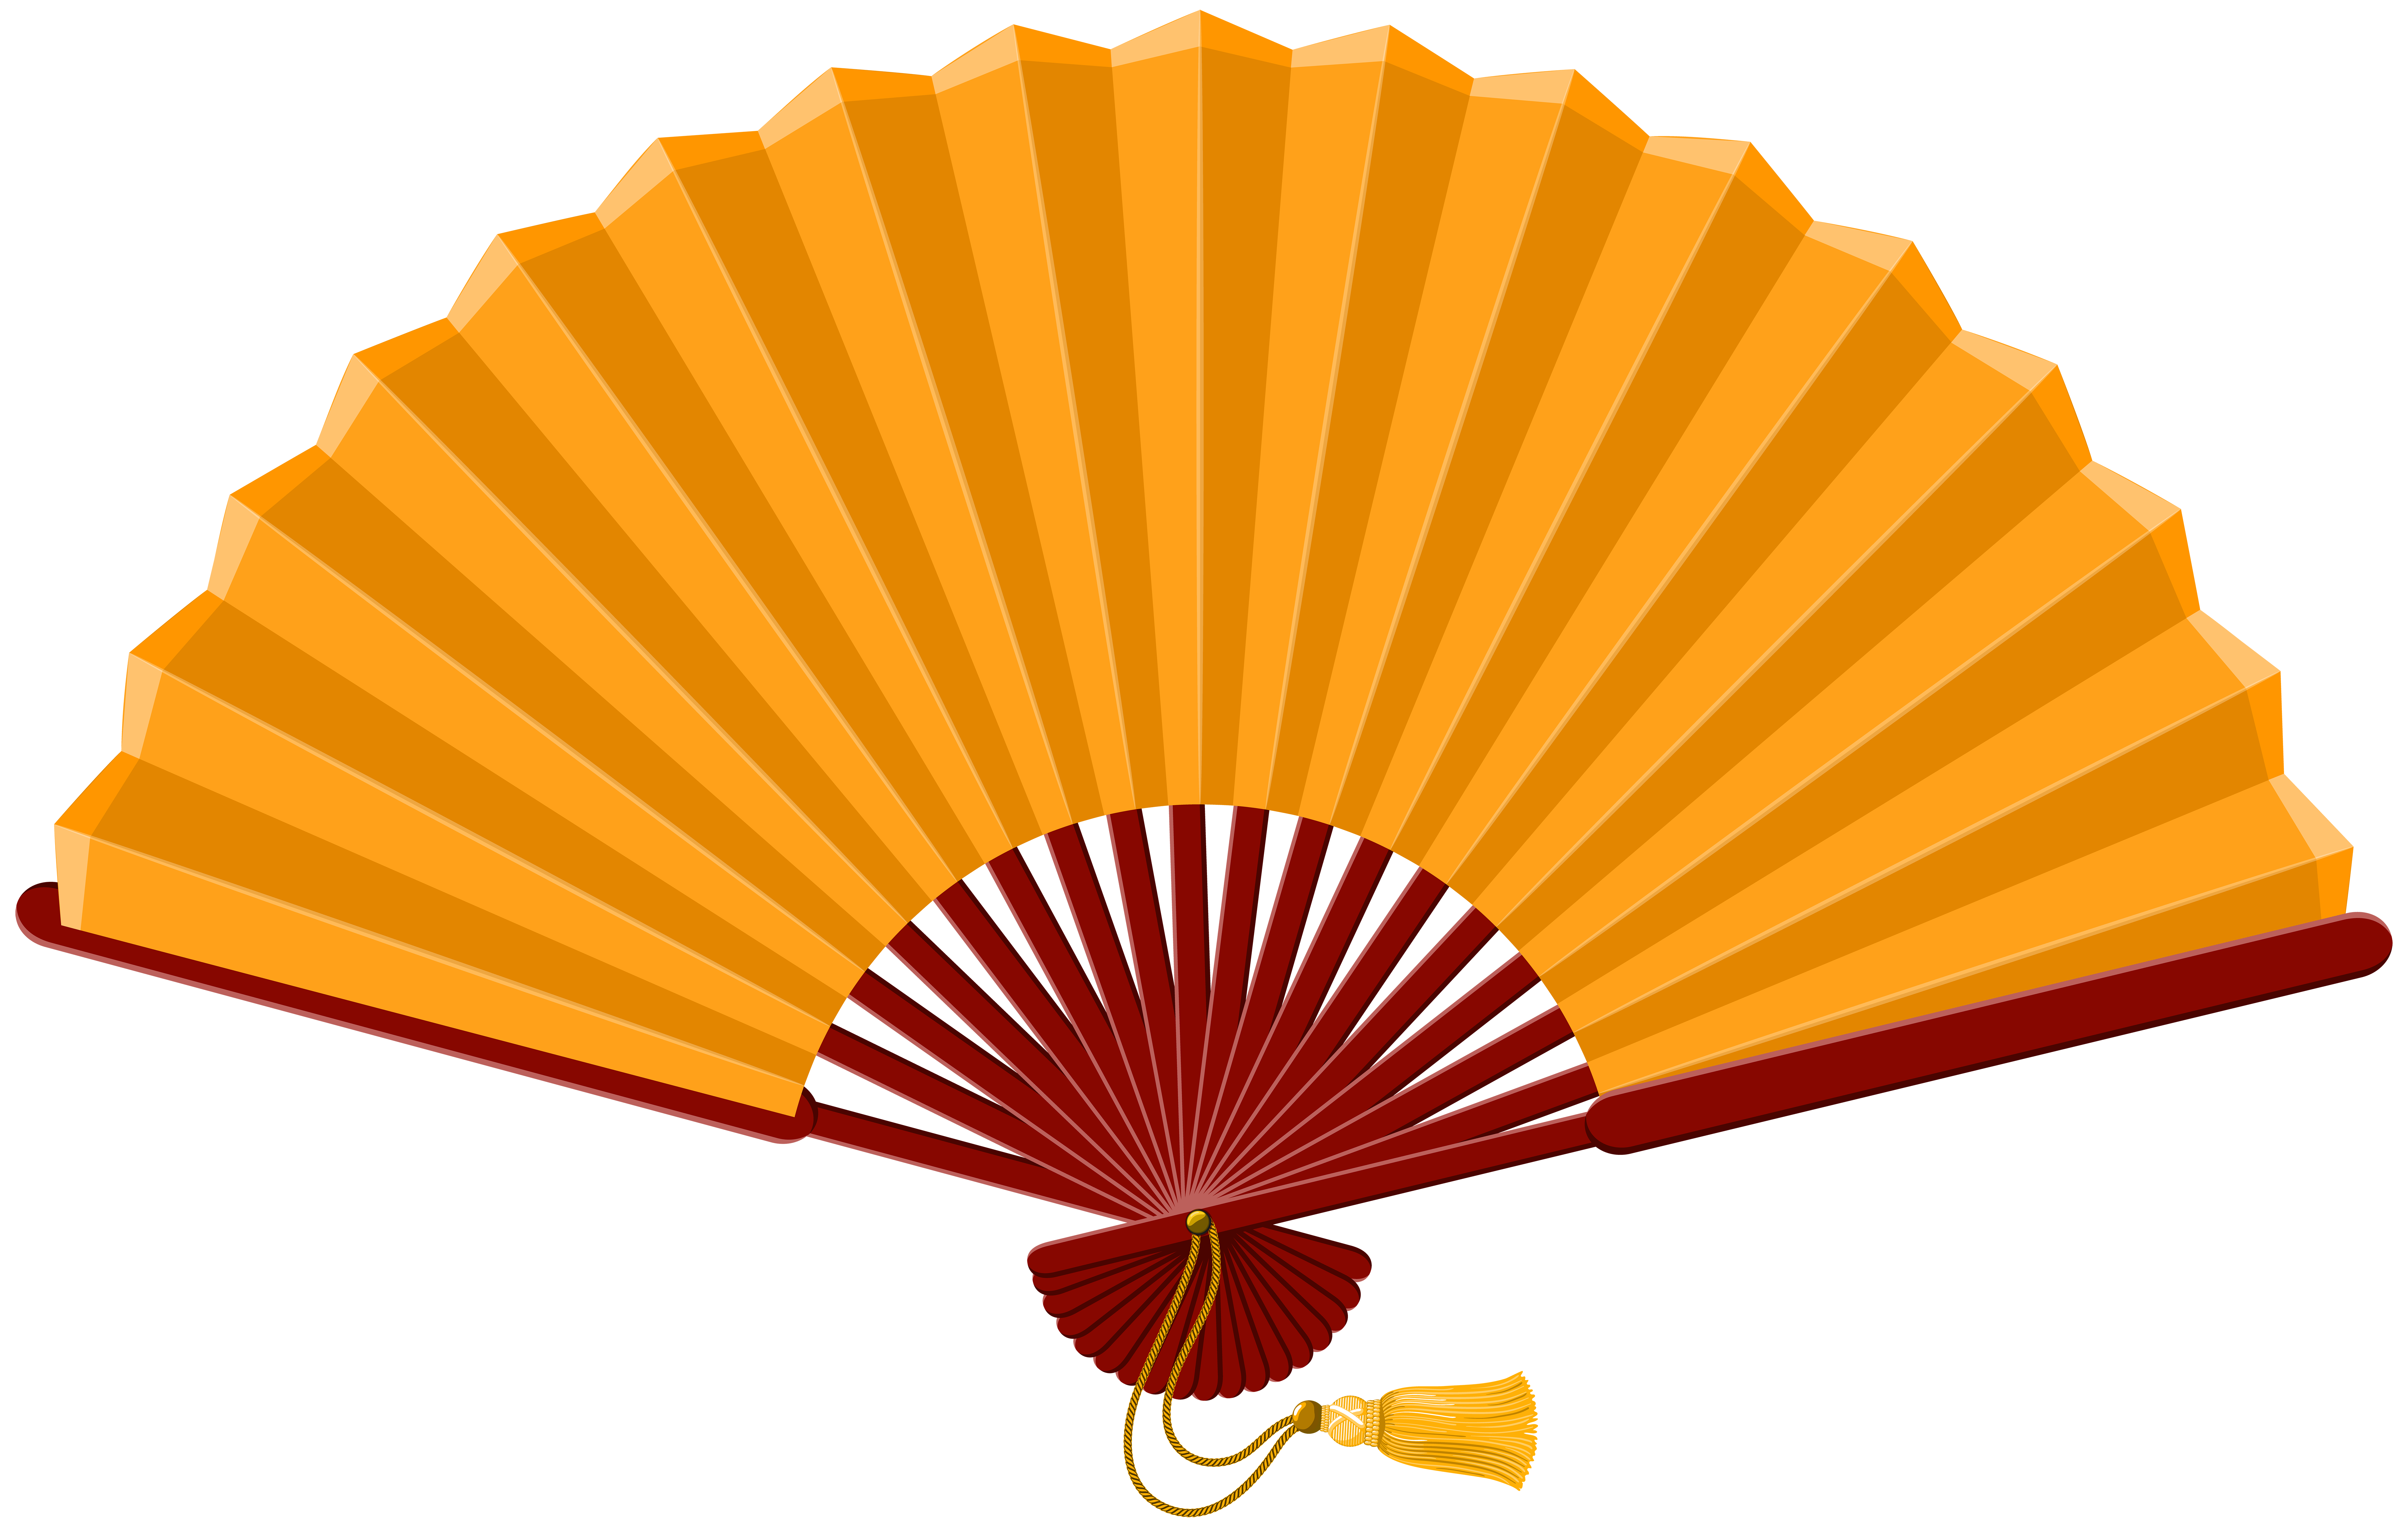 Chinese fish clipart banner free library Chinese Fan PNG Clip Art - Best WEB Clipart banner free library